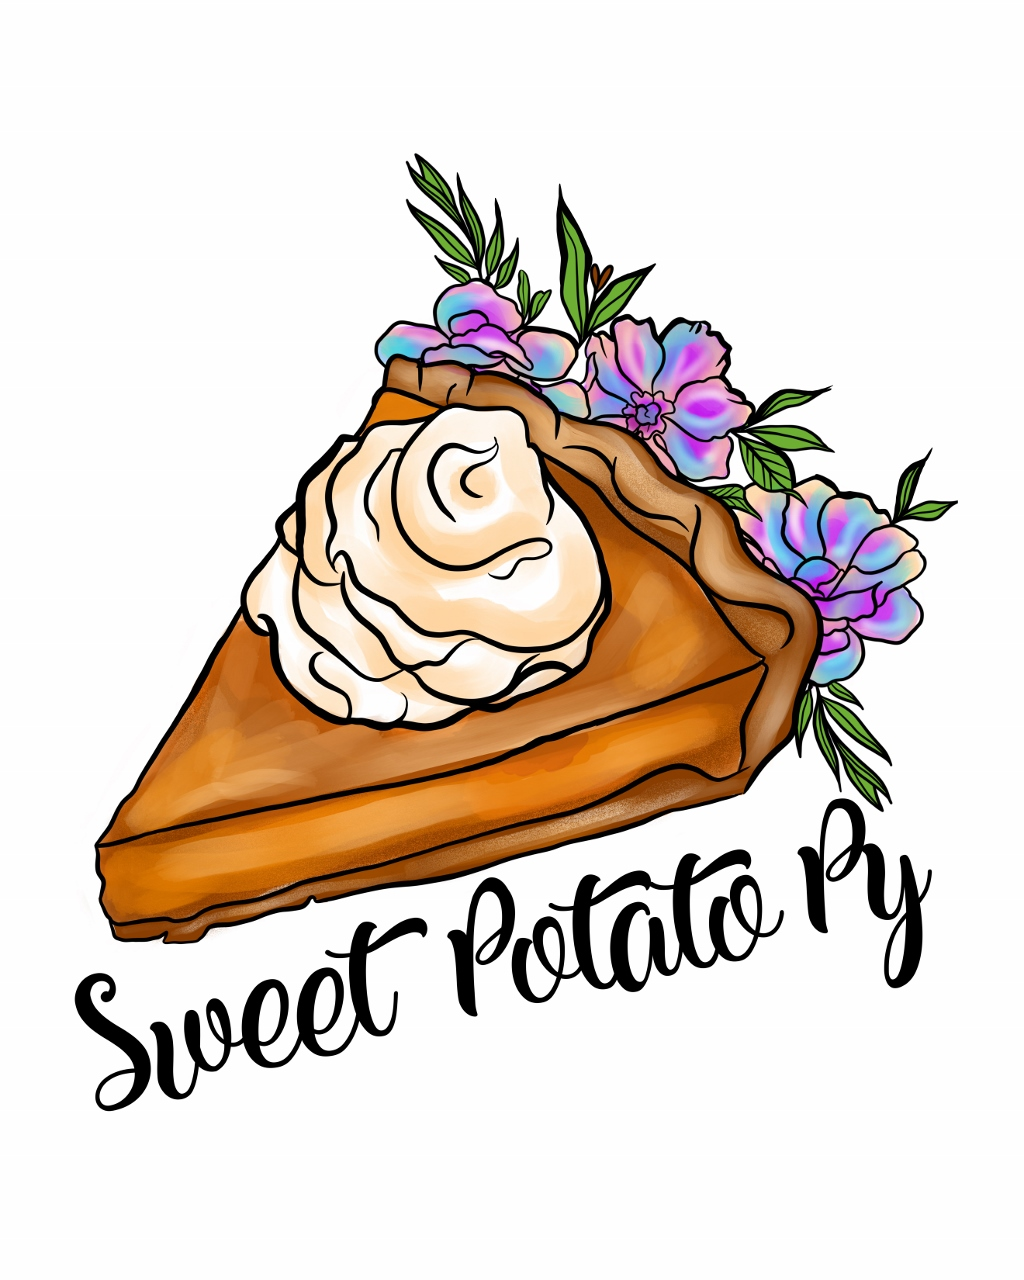 Sweet Potato Py